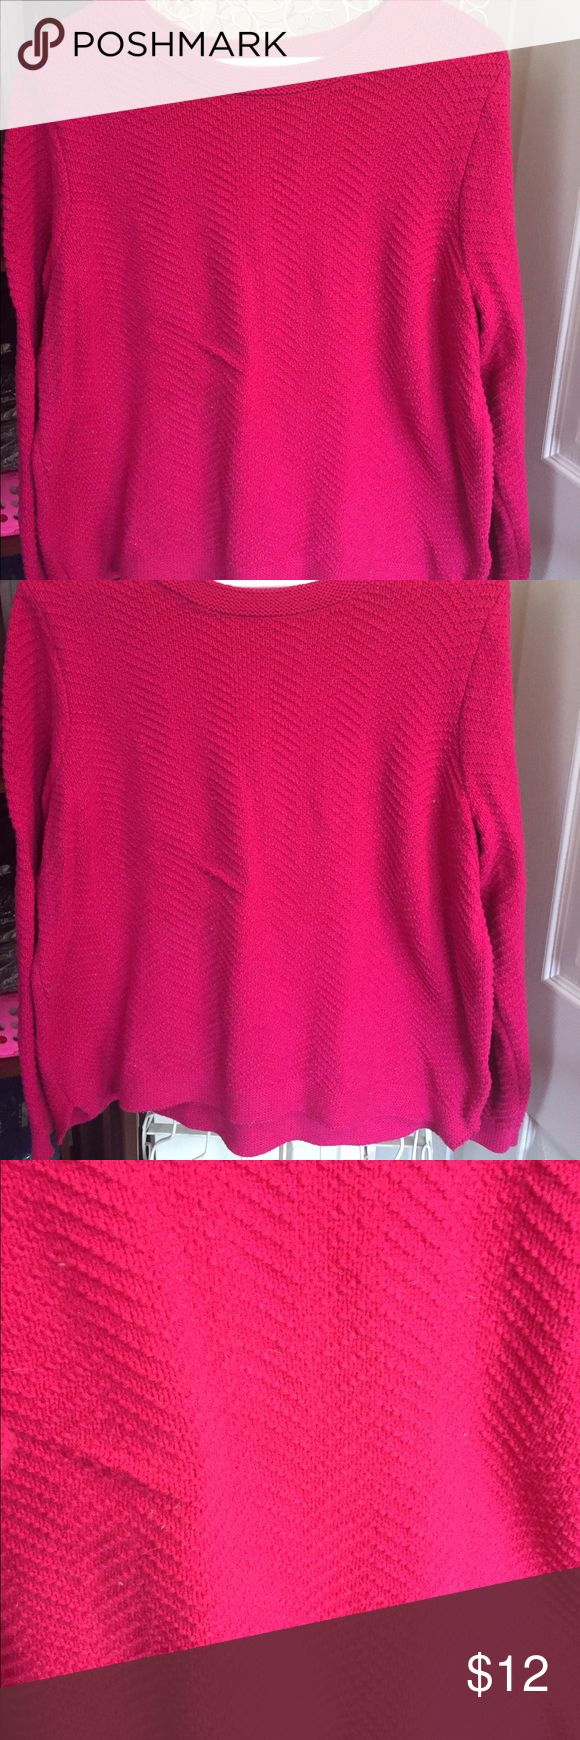 XXL SWEATER ⚡SALE TODAY To me it looks like a raspberry color.  Very pretty. Worn once. Old Navy Tops